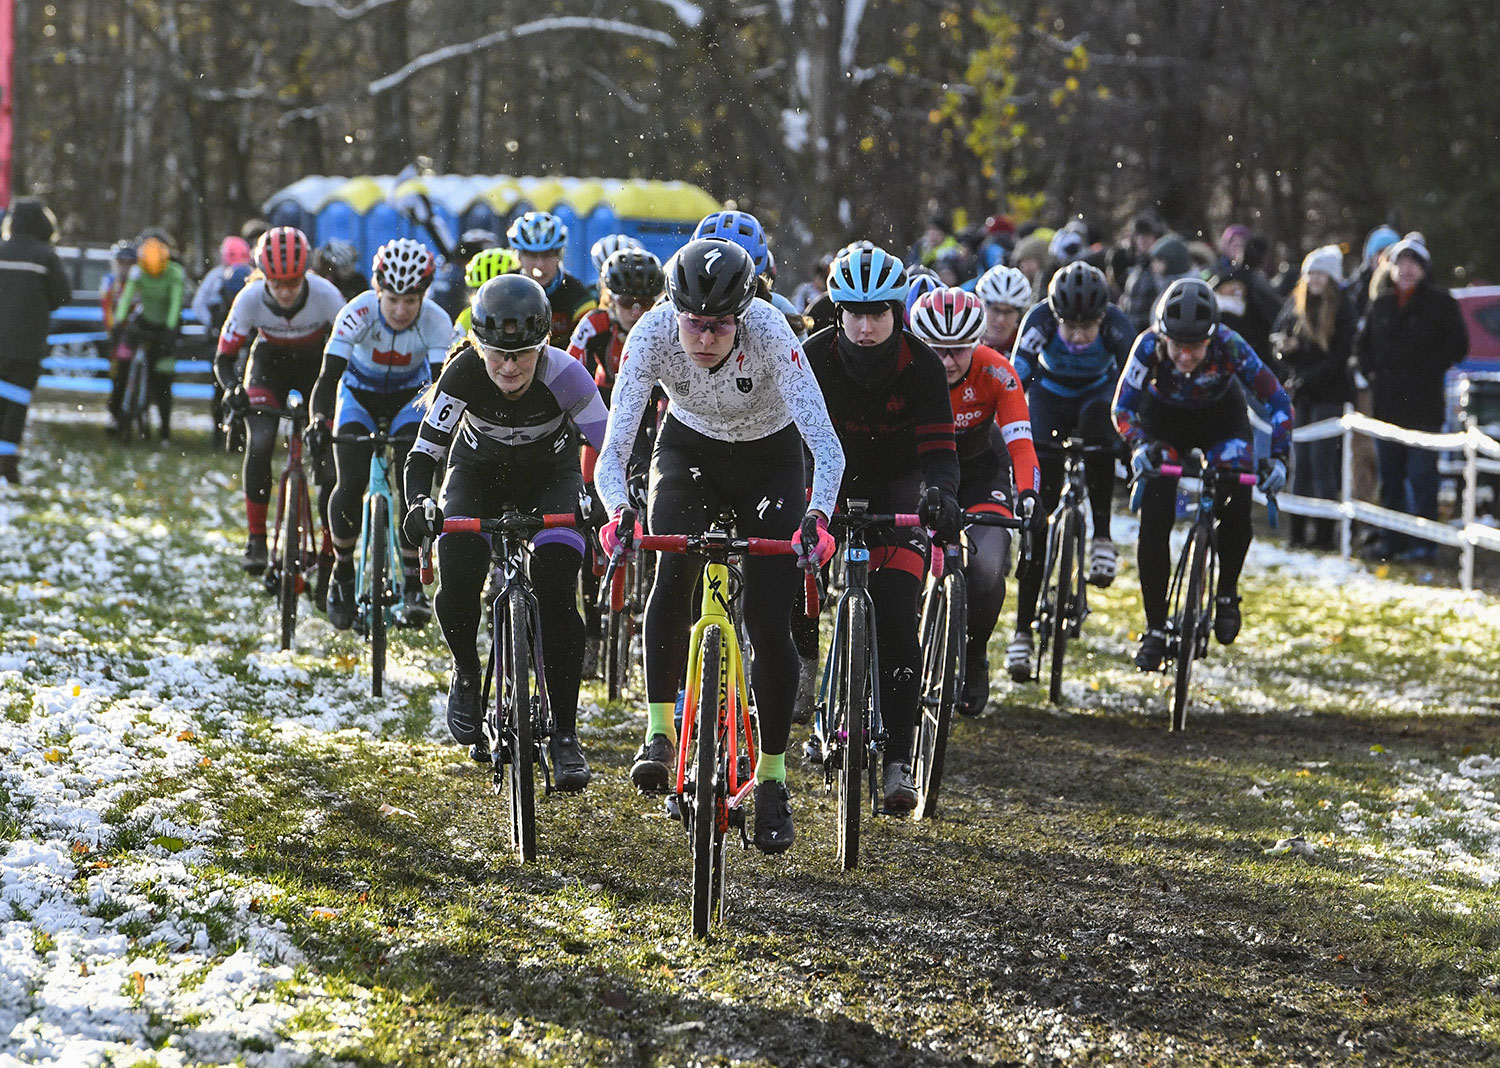 Registration for a race - That is always a nice gift! Registration for a stage race, a cyclocross race, or a gravel race, an event is always really fun, because it gives you a goal to work towards!